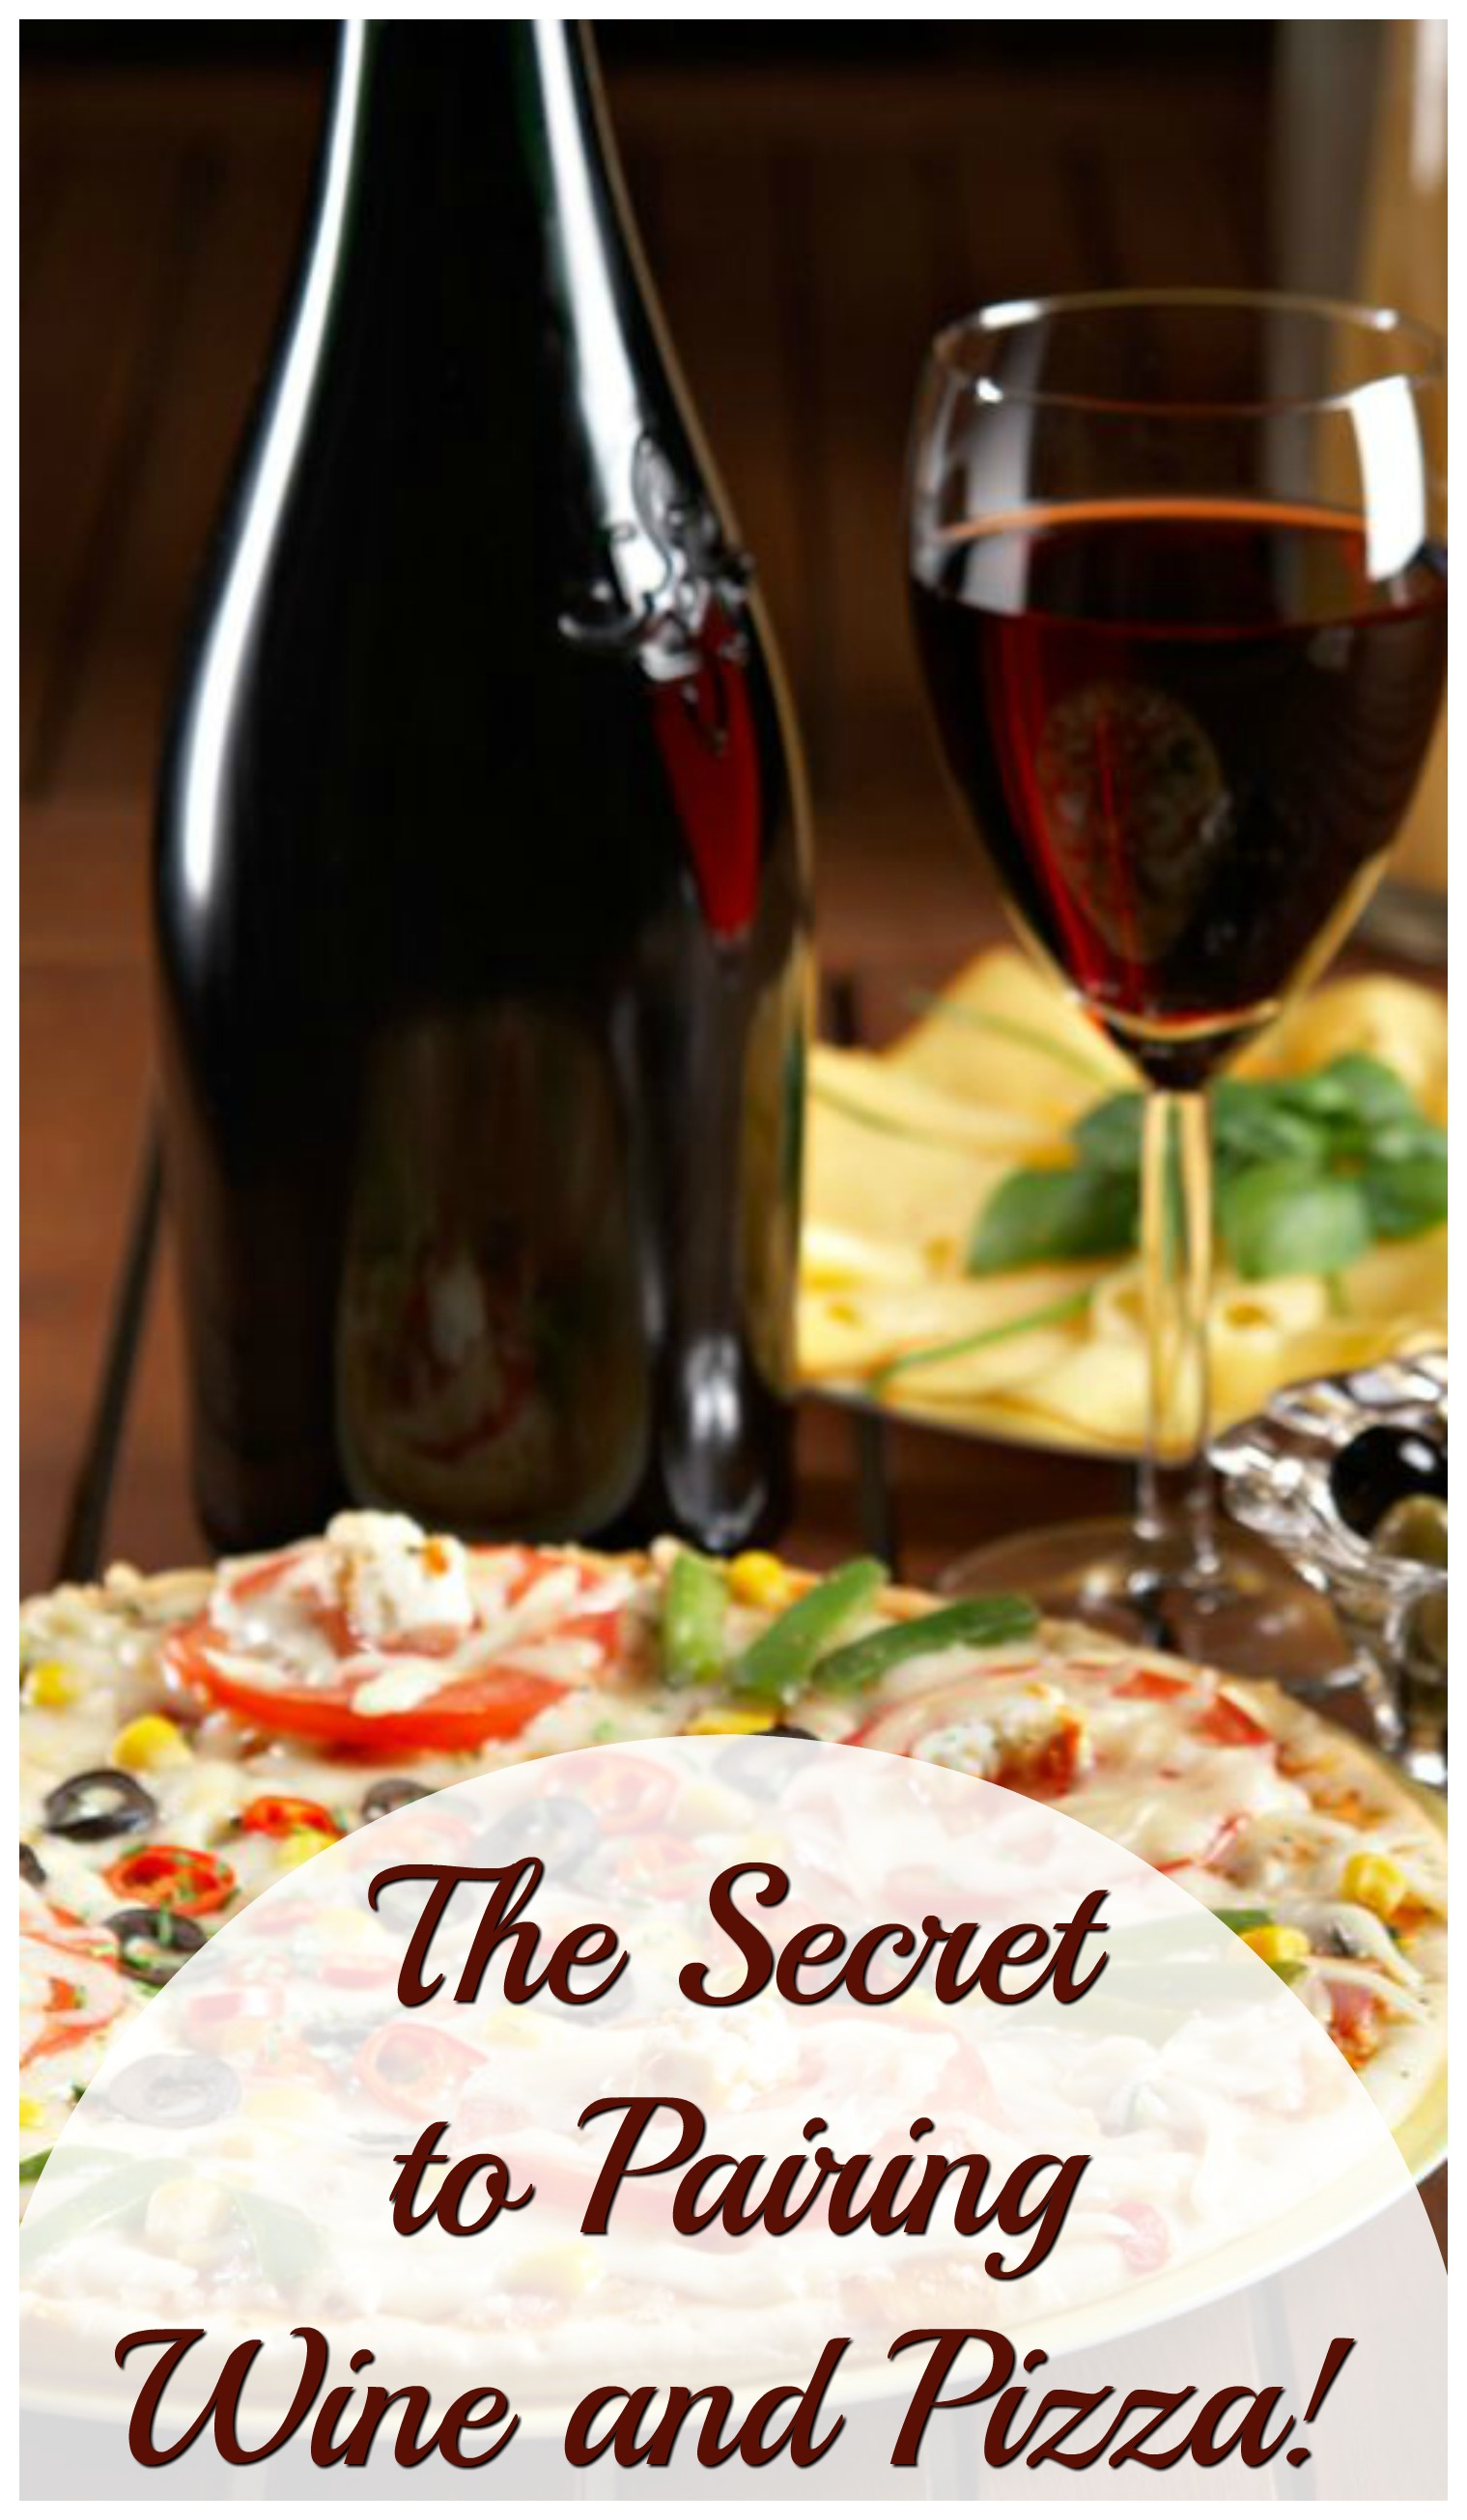 Fine out what the secret is to pairing a great bottle of wine with an awesome pizza?